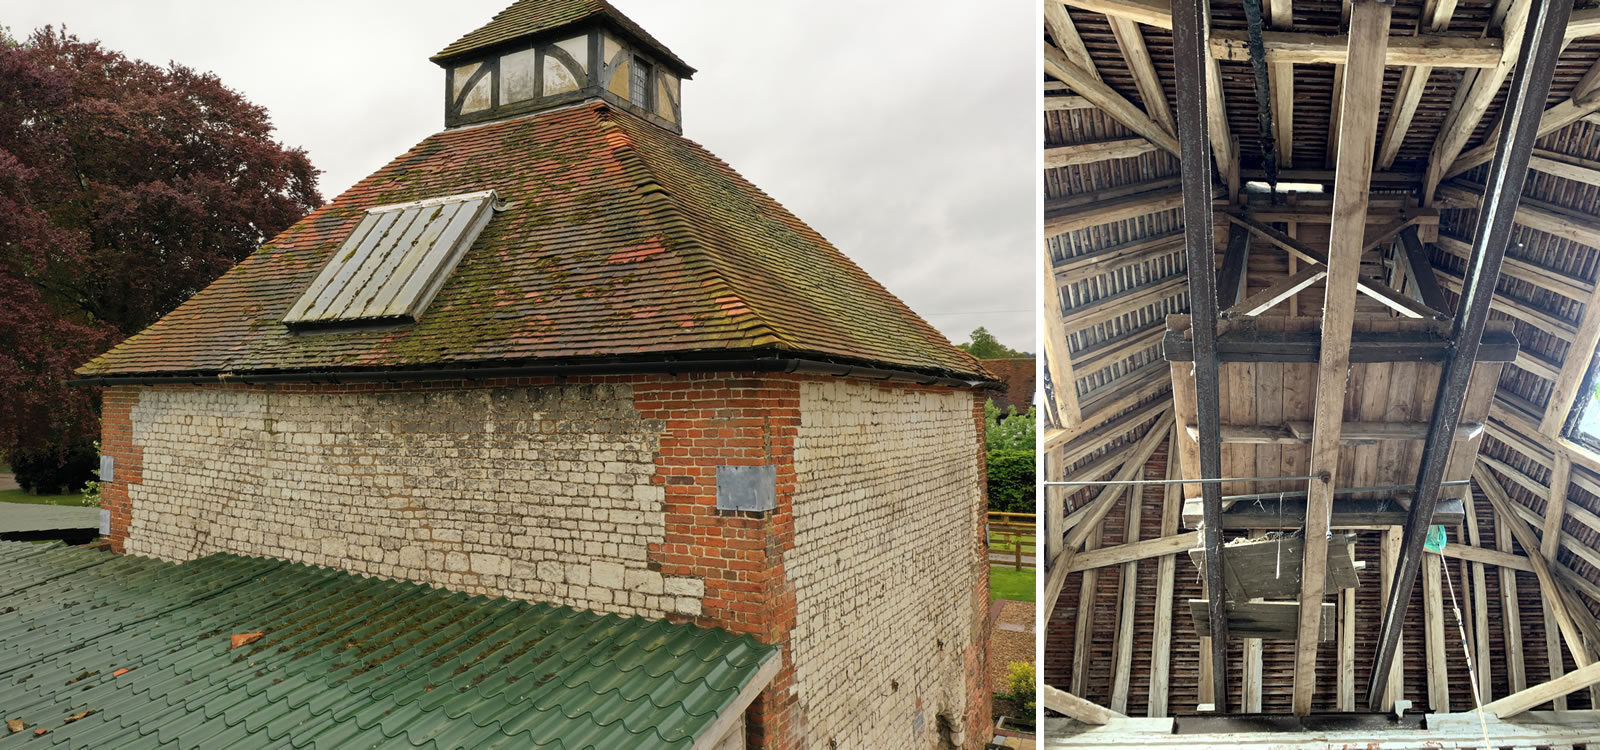 Grade II listed survey of a Dovecote in Cookham